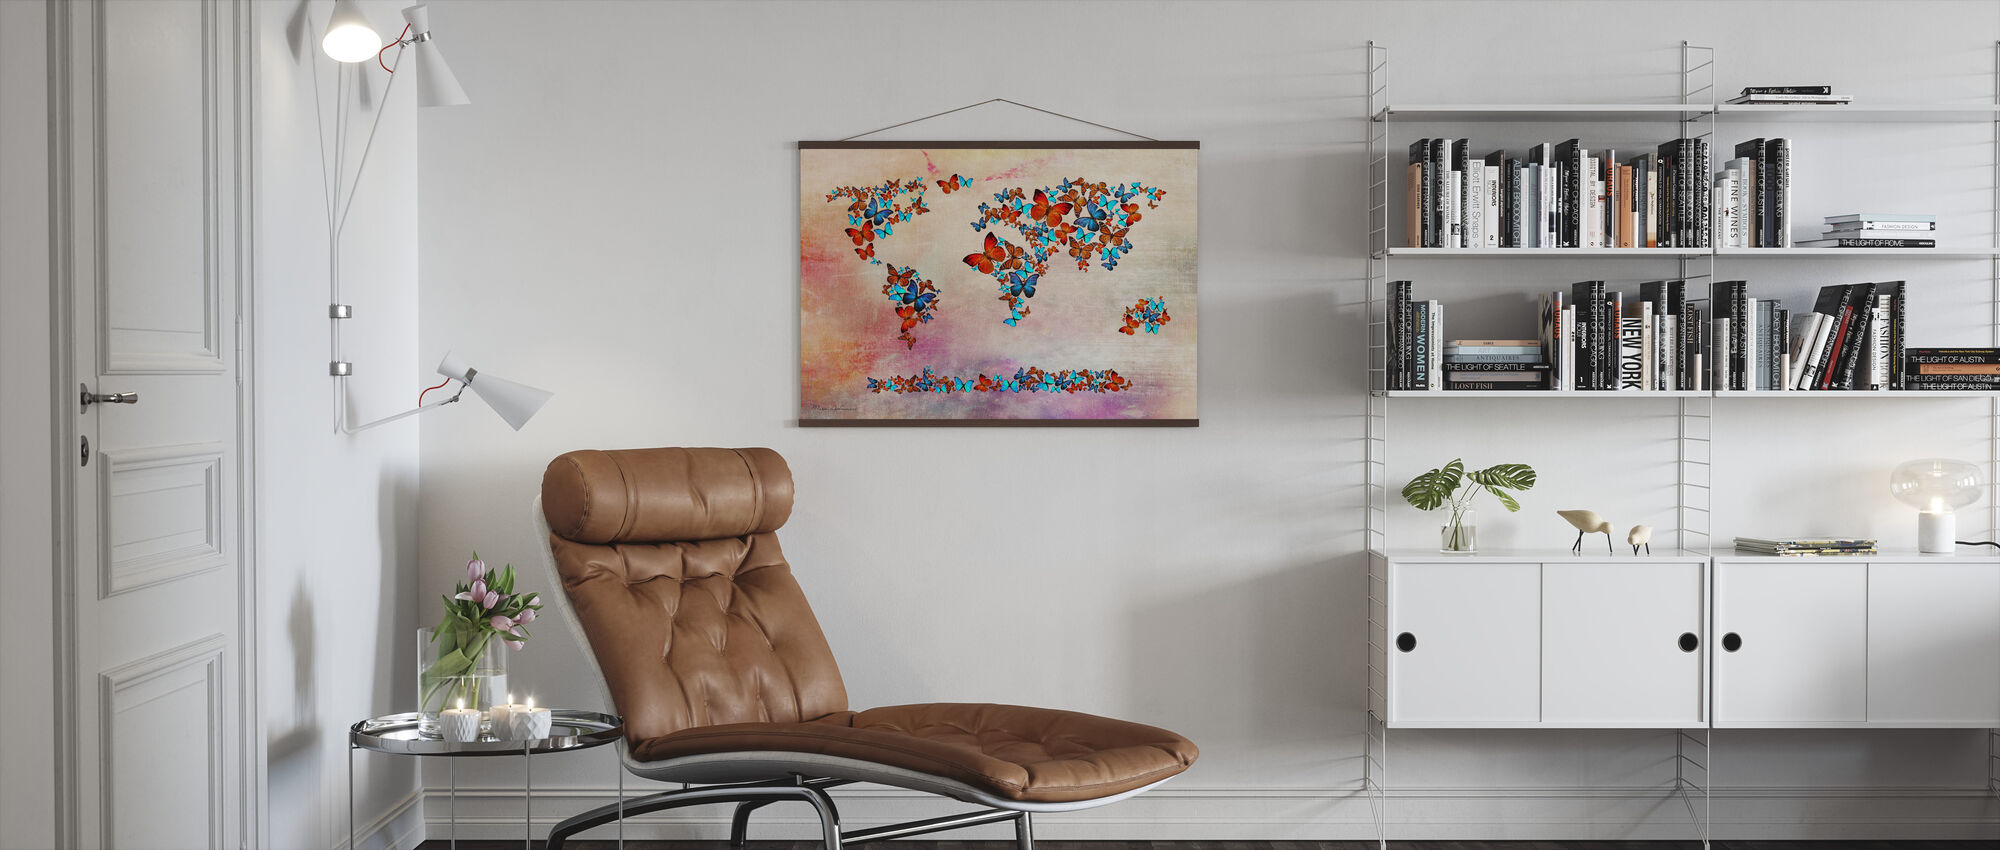 Butterflies Forming World Map - Poster - Living Room